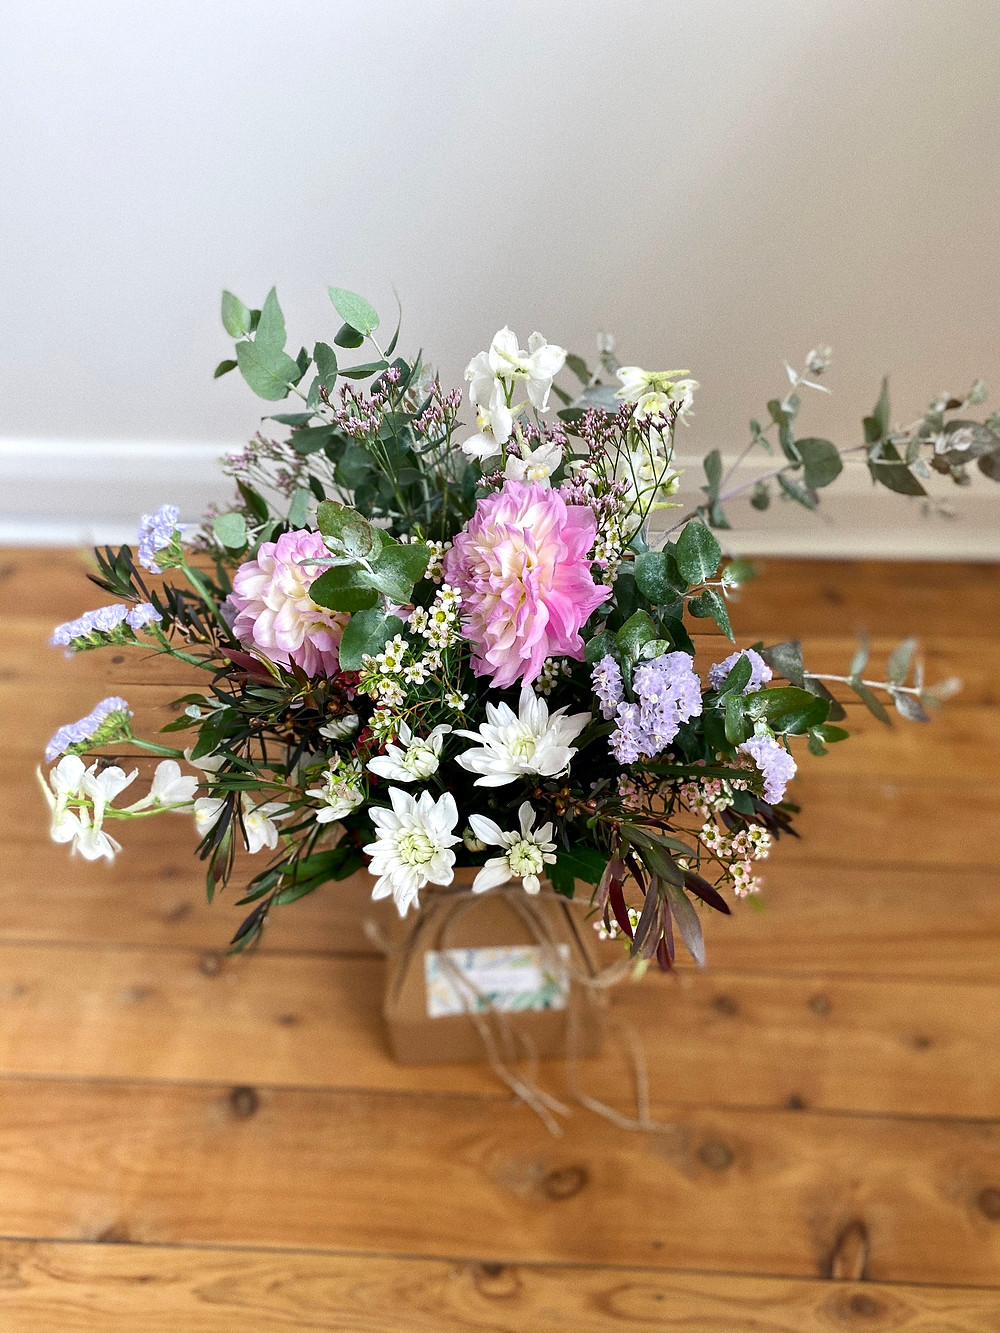 One Design Posy featuring Dahlia, Chryssie, Statice, Gum, Copper Tea tree, Misty and Delphinium.